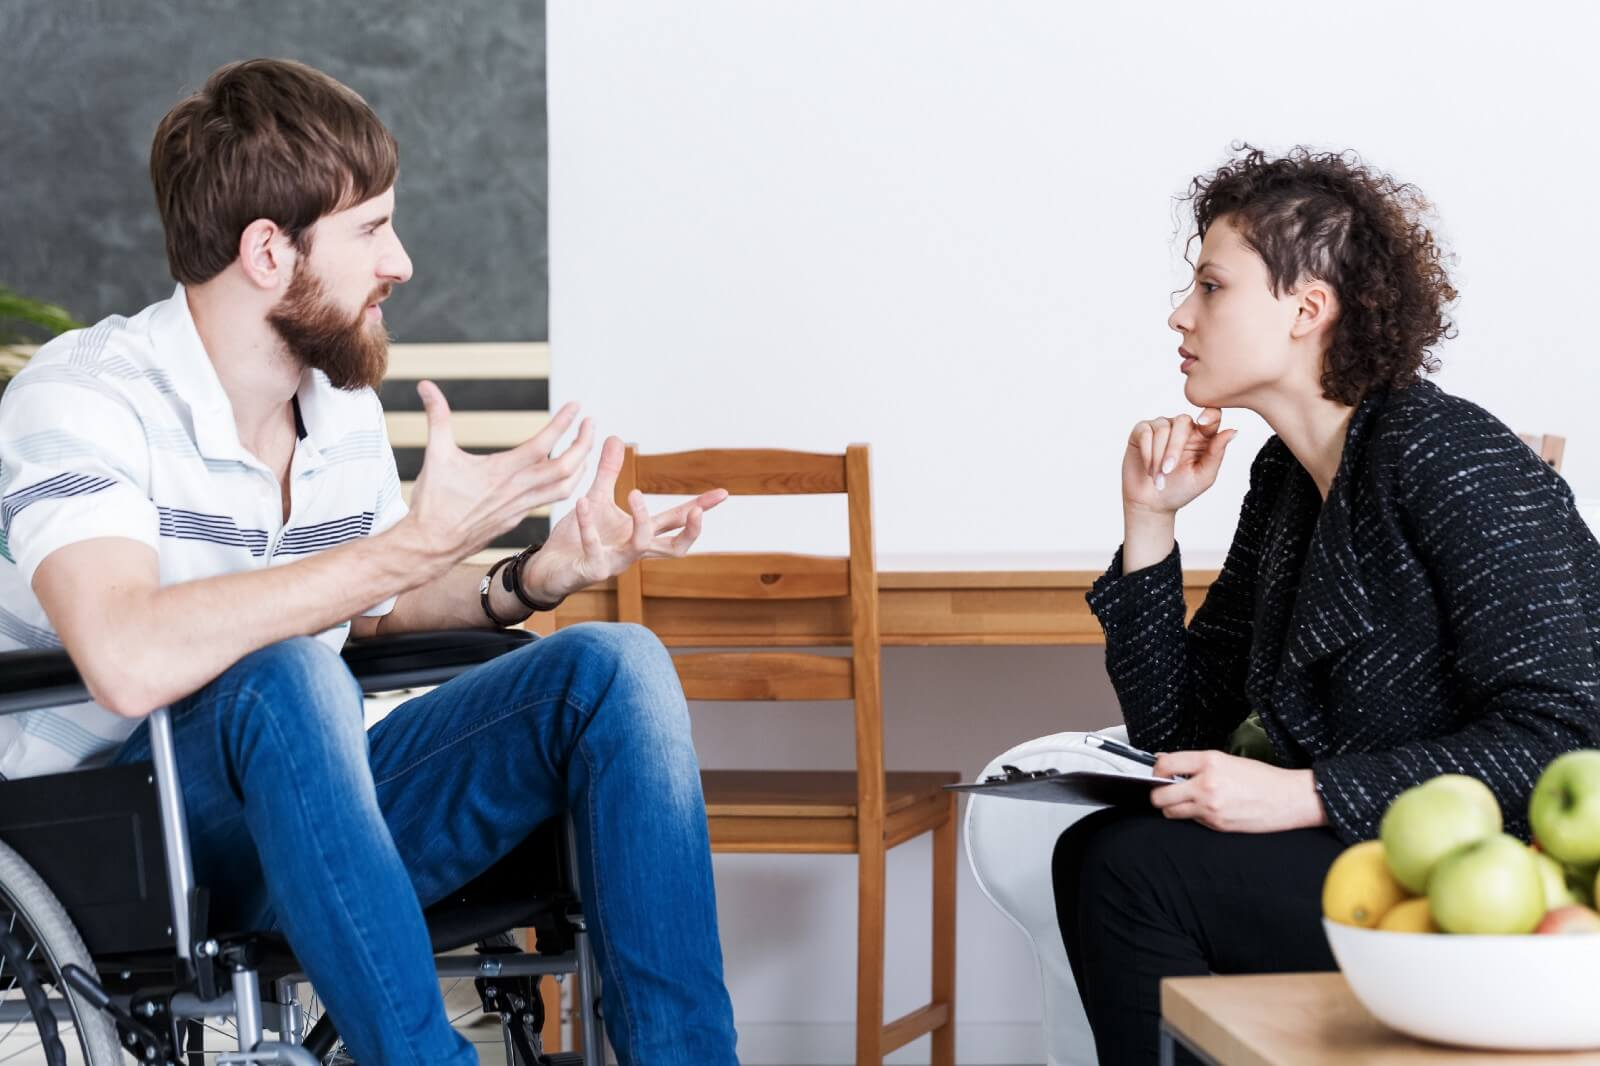 Man using wheelchair and woman engaging in conversation in a business setting